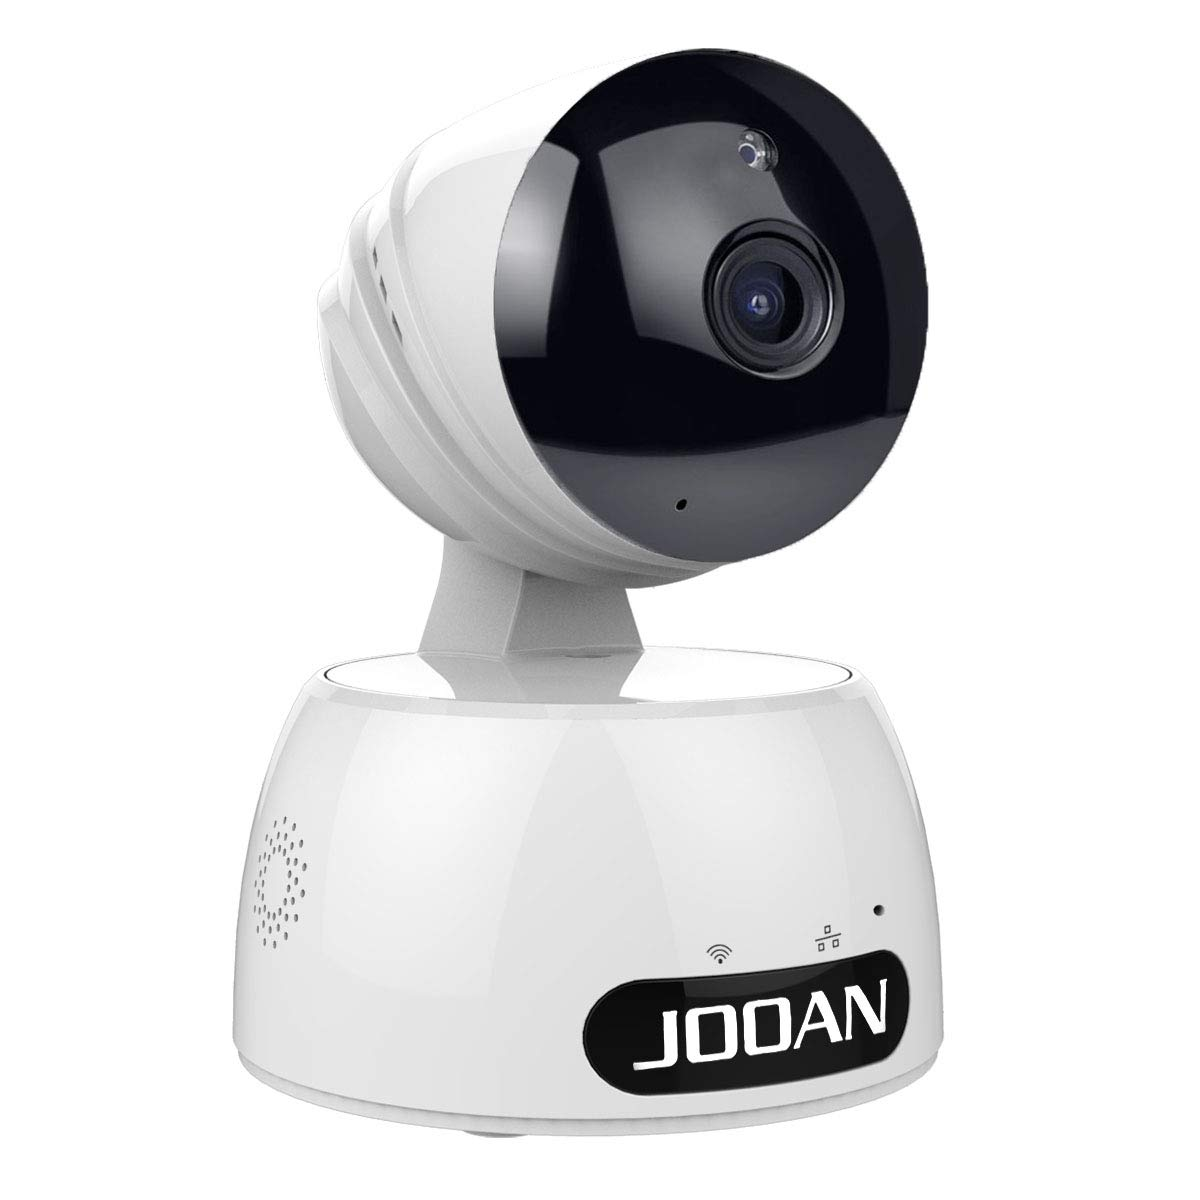 Security IP Camera,JOOAN Wireless Camera 1080P Home Video Surveillance with Two Way Audio Remote Indoor Night Vision Pet Baby Monitor